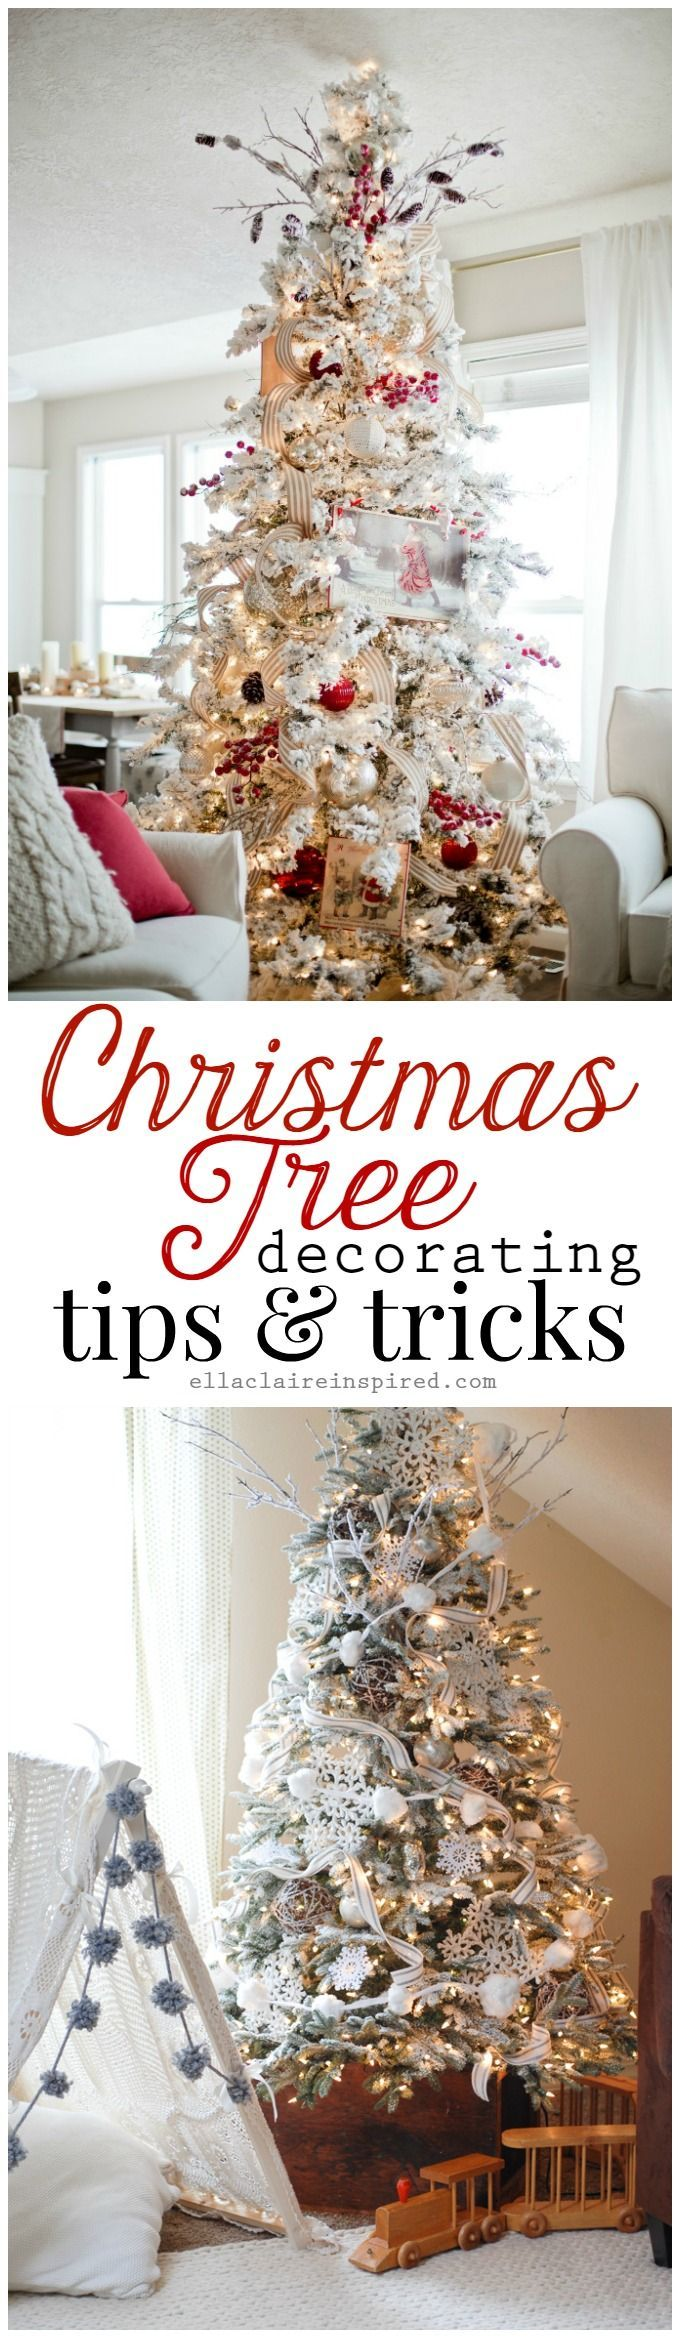 Christmas Tree Decorating Tips & Tricks